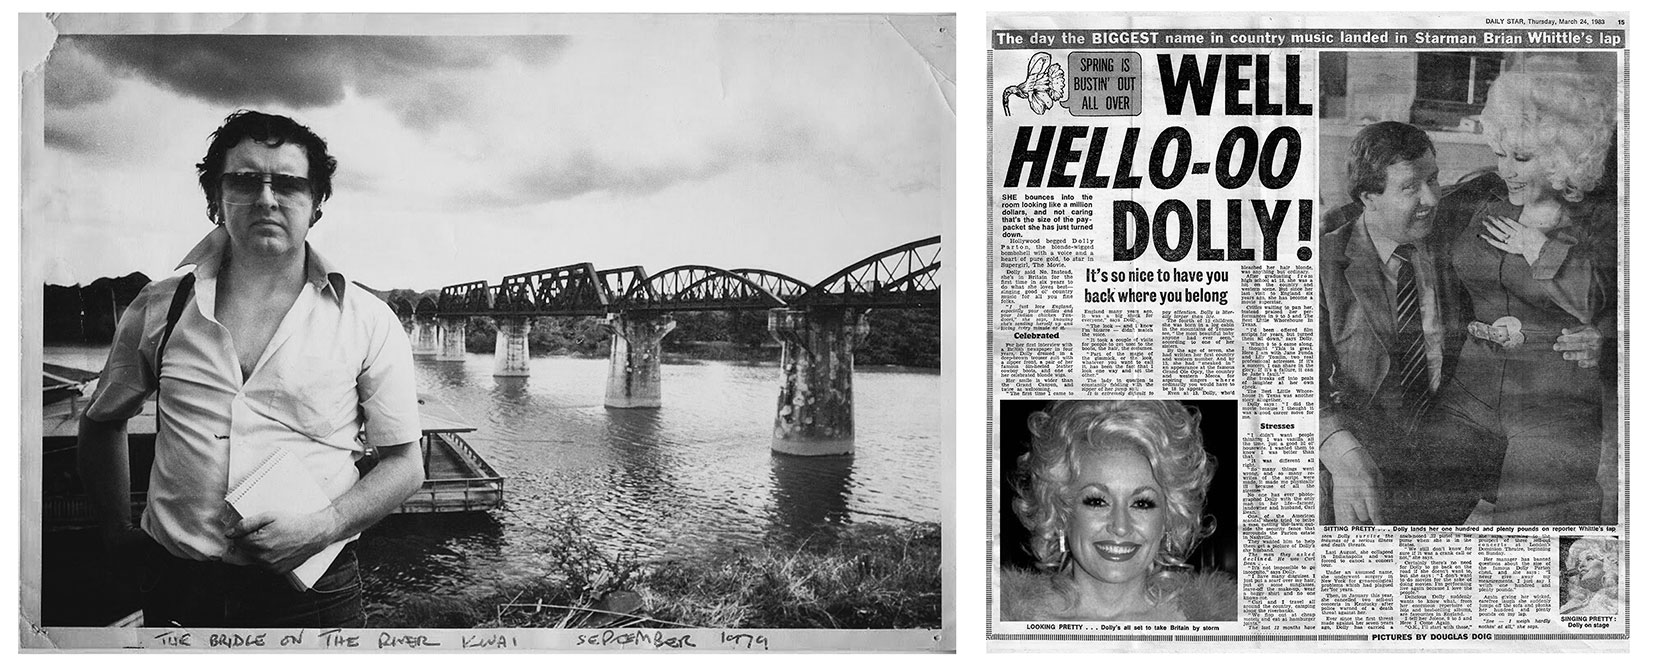 My dad, Brian Whittle, with his notebook covering a story about The Bridge On The River Kwai in September 1979 for The National Enquirer, and Dolly Parton sat on his knee as the Showbiz Editor for the Daily Star in March, 1983.